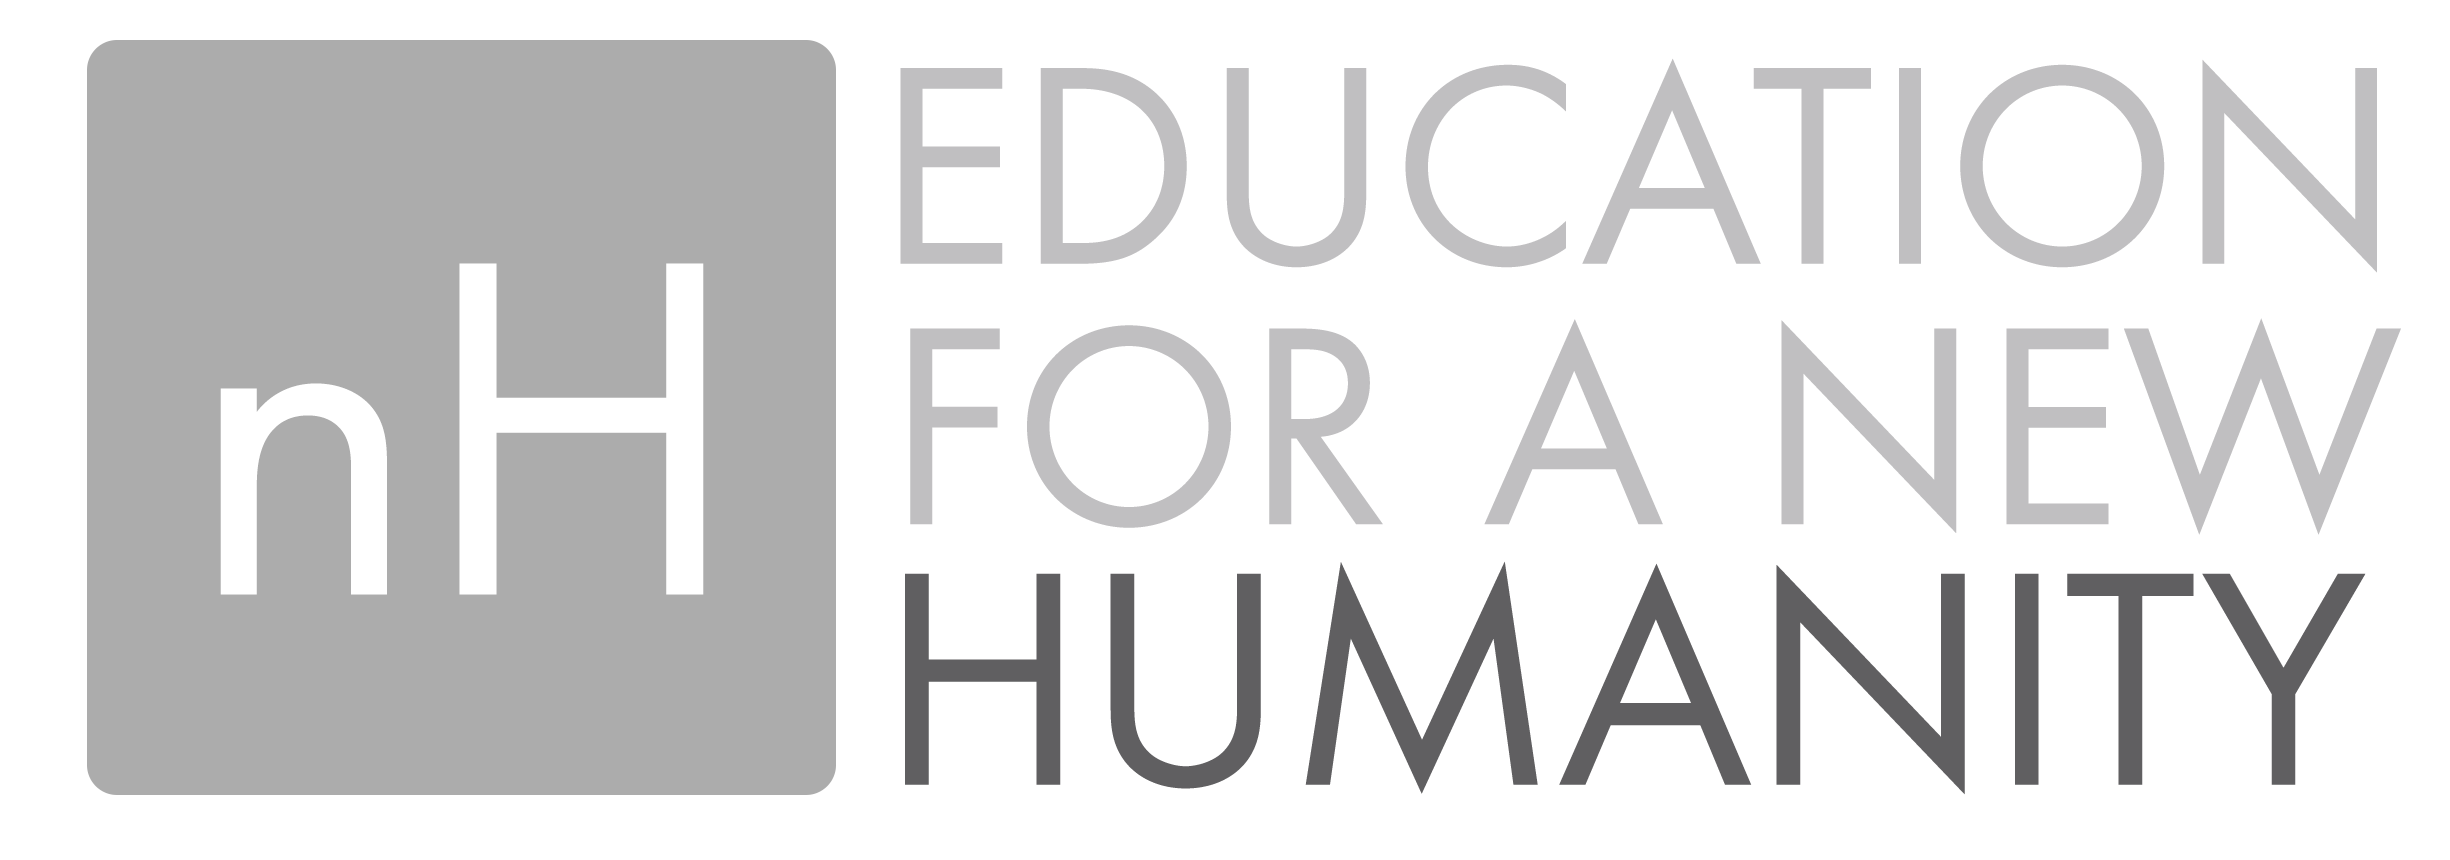 New Humantity: Education for a New Humanity.